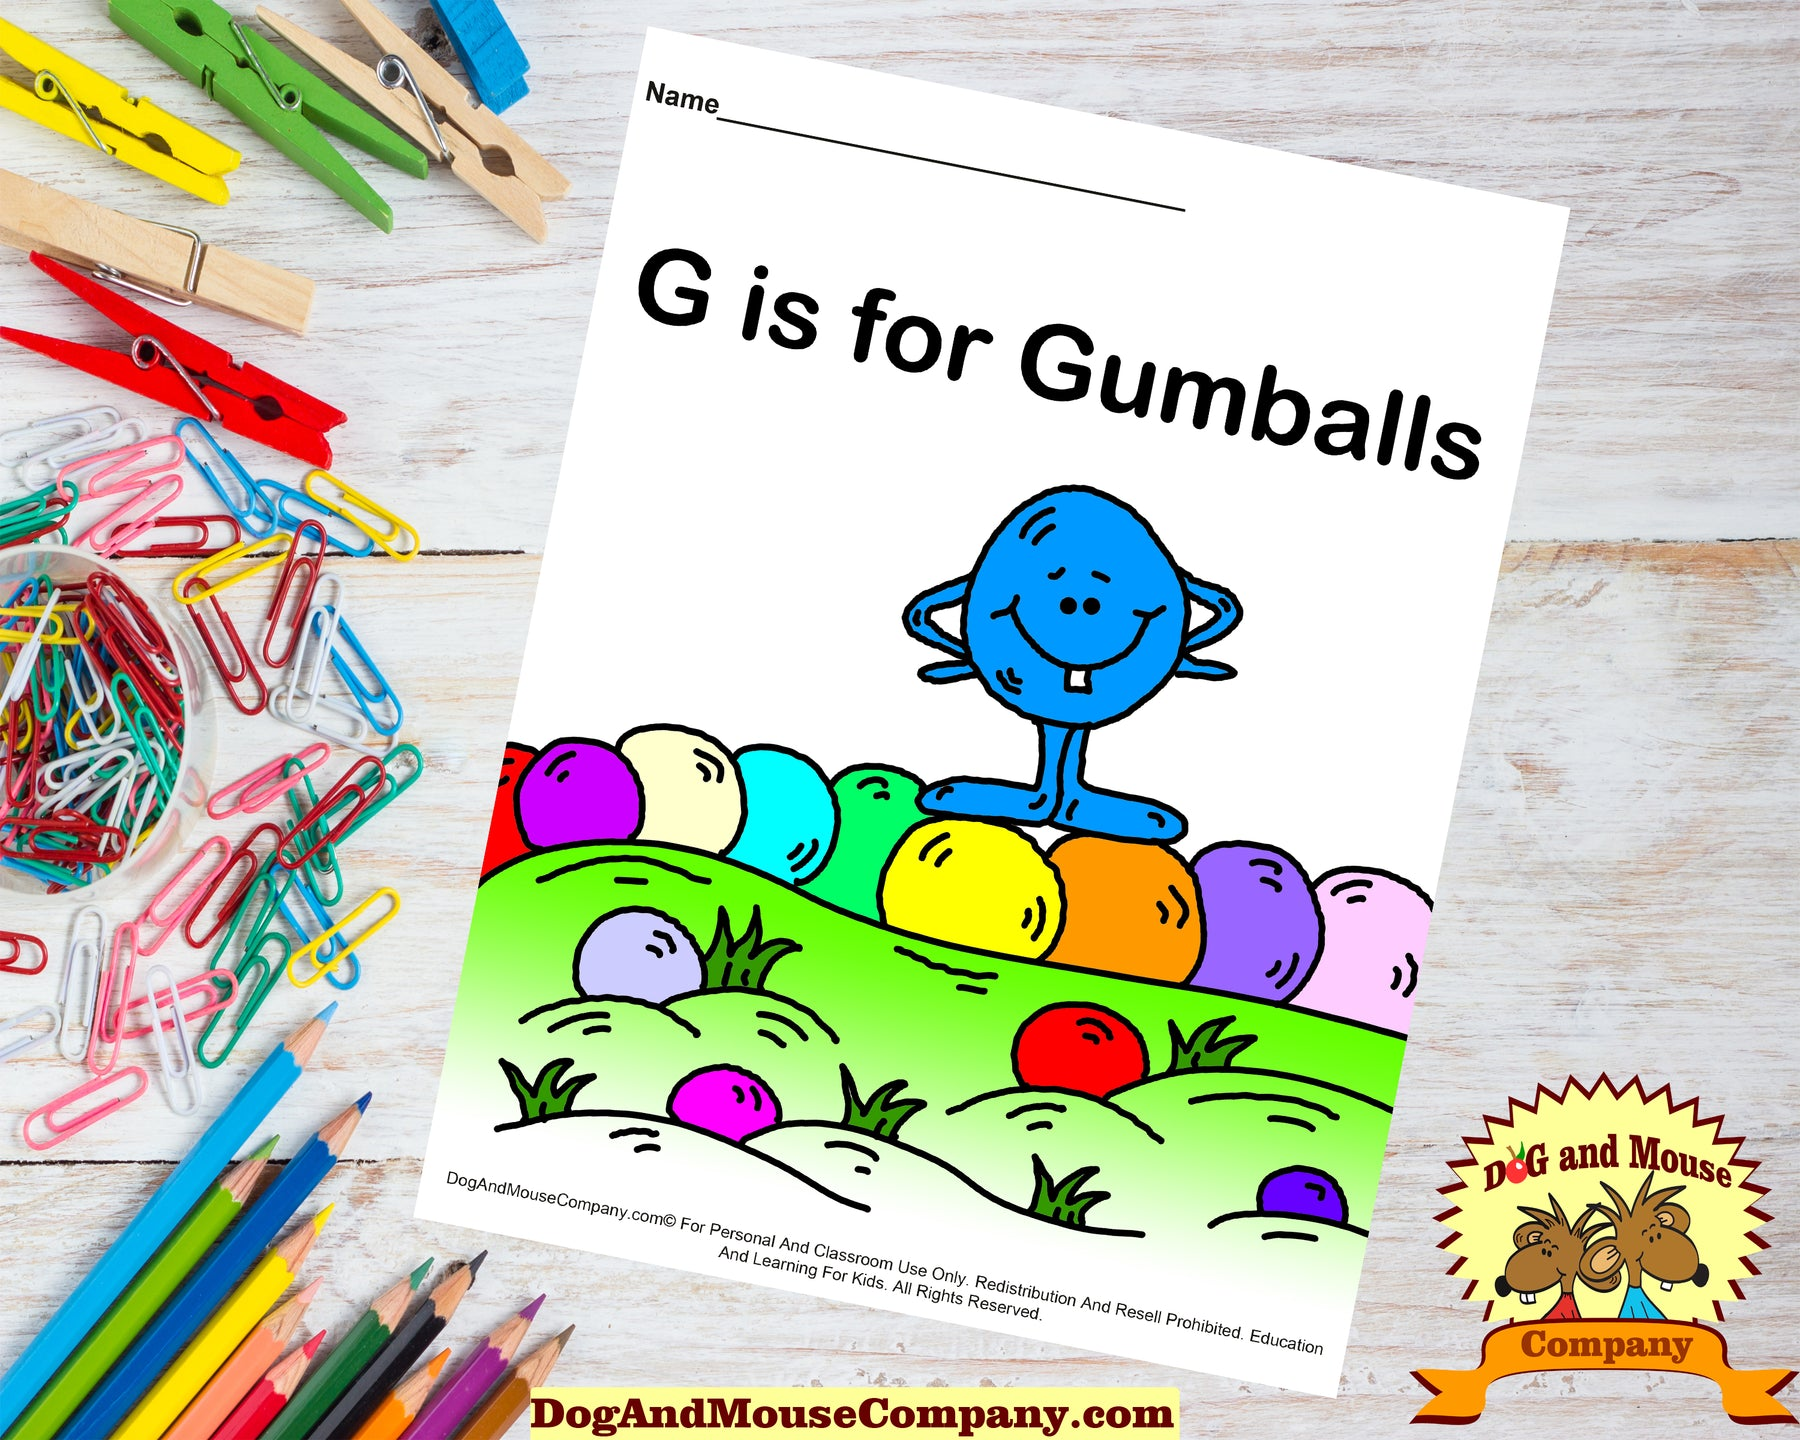 G is for gumballs colored template worksheet by DogAndMouseCompany.com